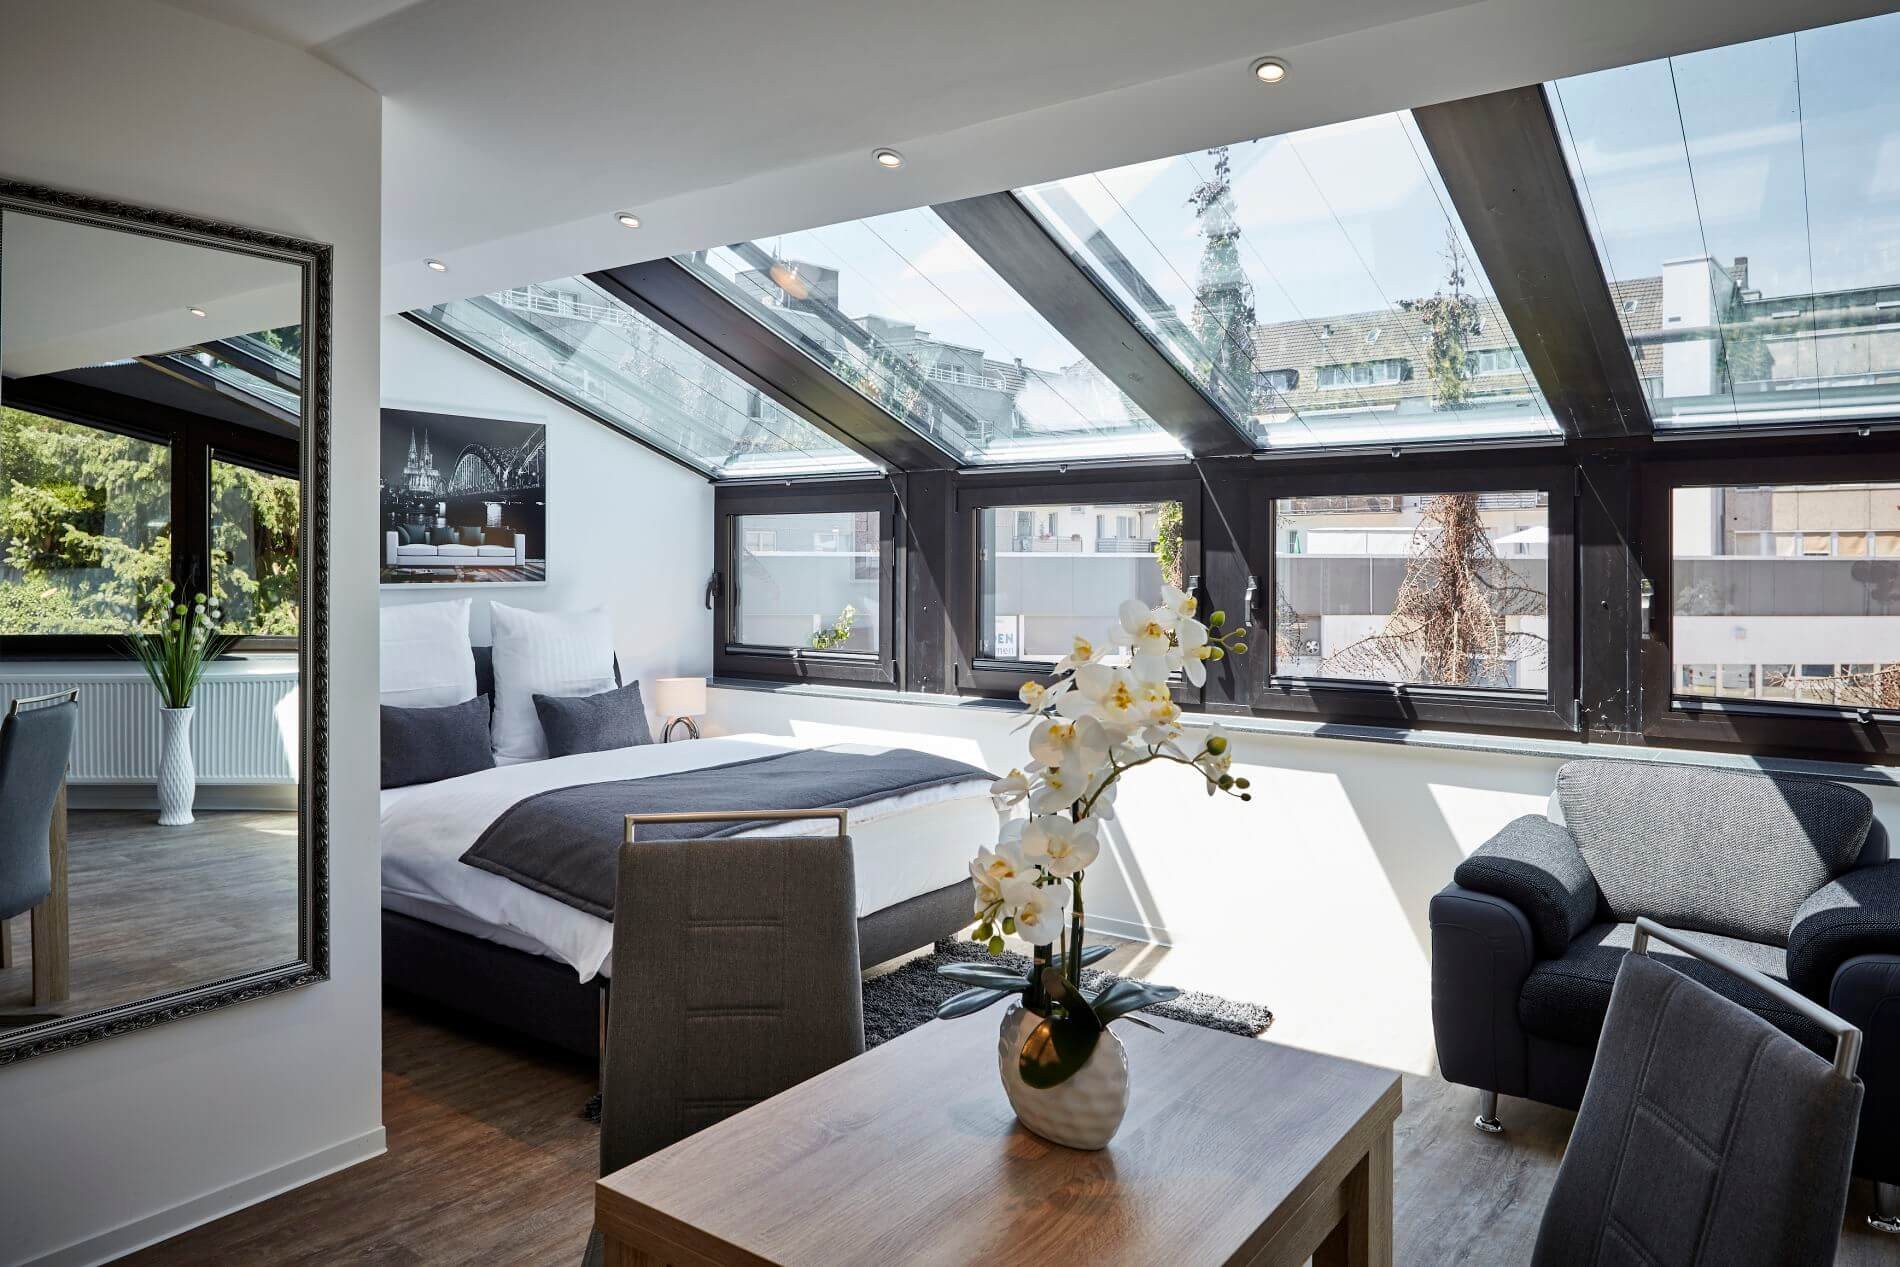 Modern, furnished apartment rental in Cologne